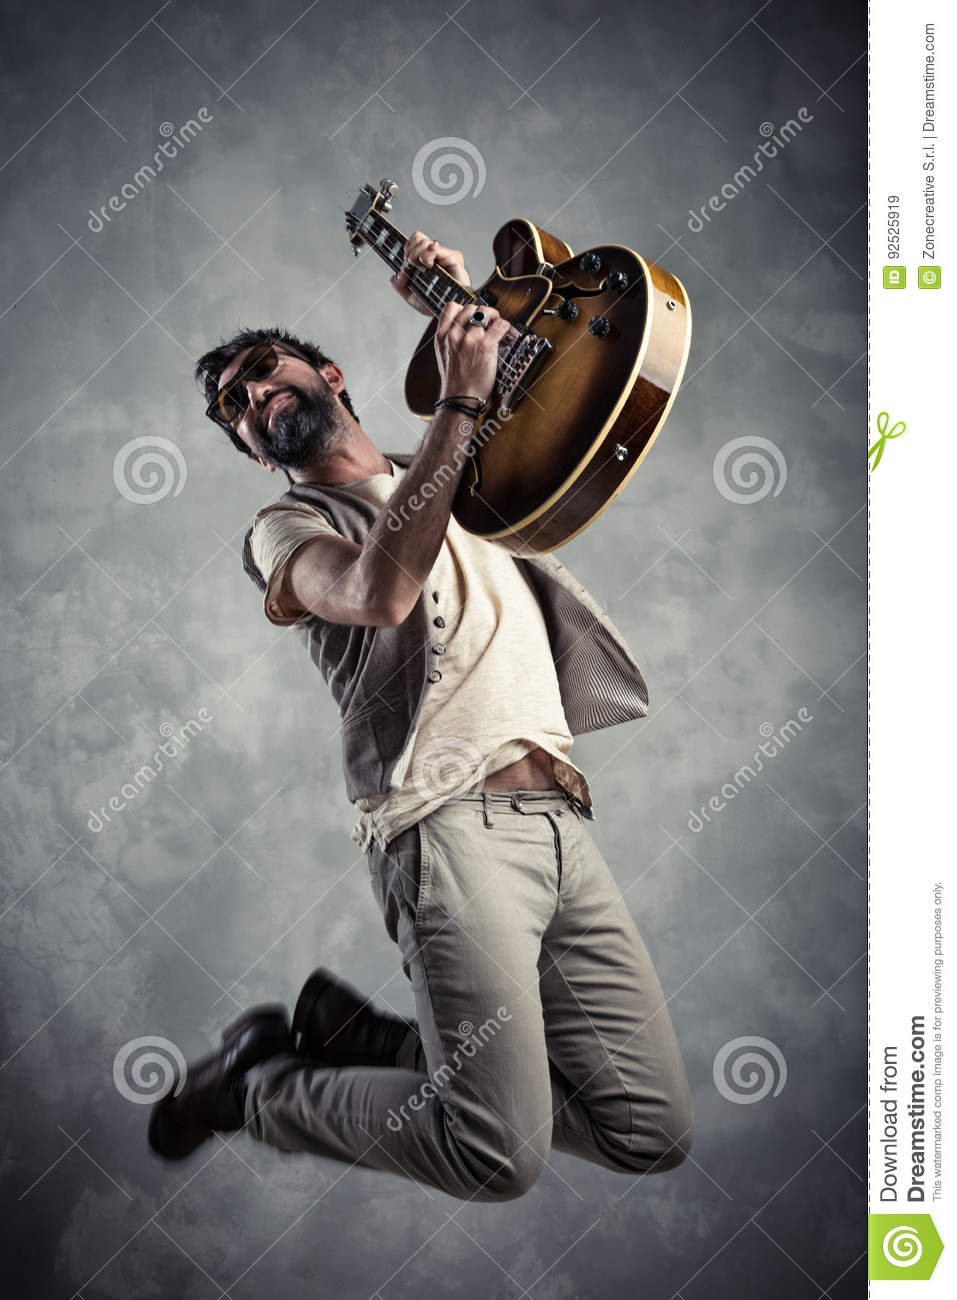 Adult caucasian guitarist portrait playing electric guitar and jumping on grunge background. Music singer modern concept